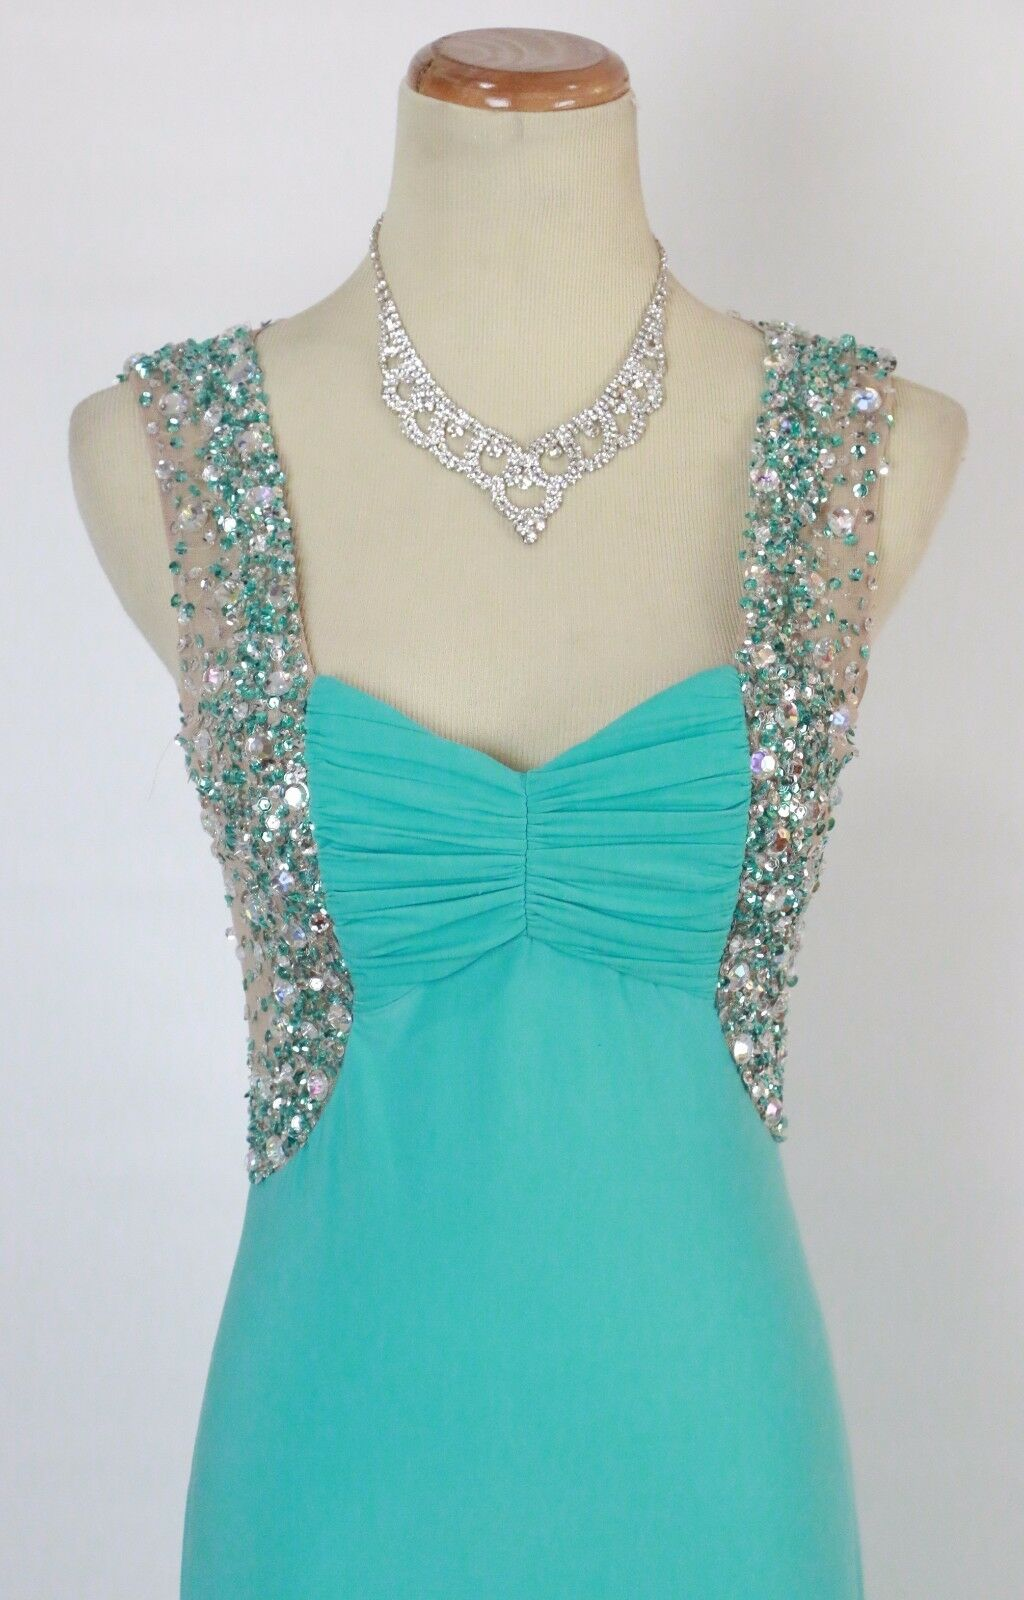 NWT Prom Formal Cruise Dress SIZE 3 Gown  New Mint Long Dress Blondie Nites